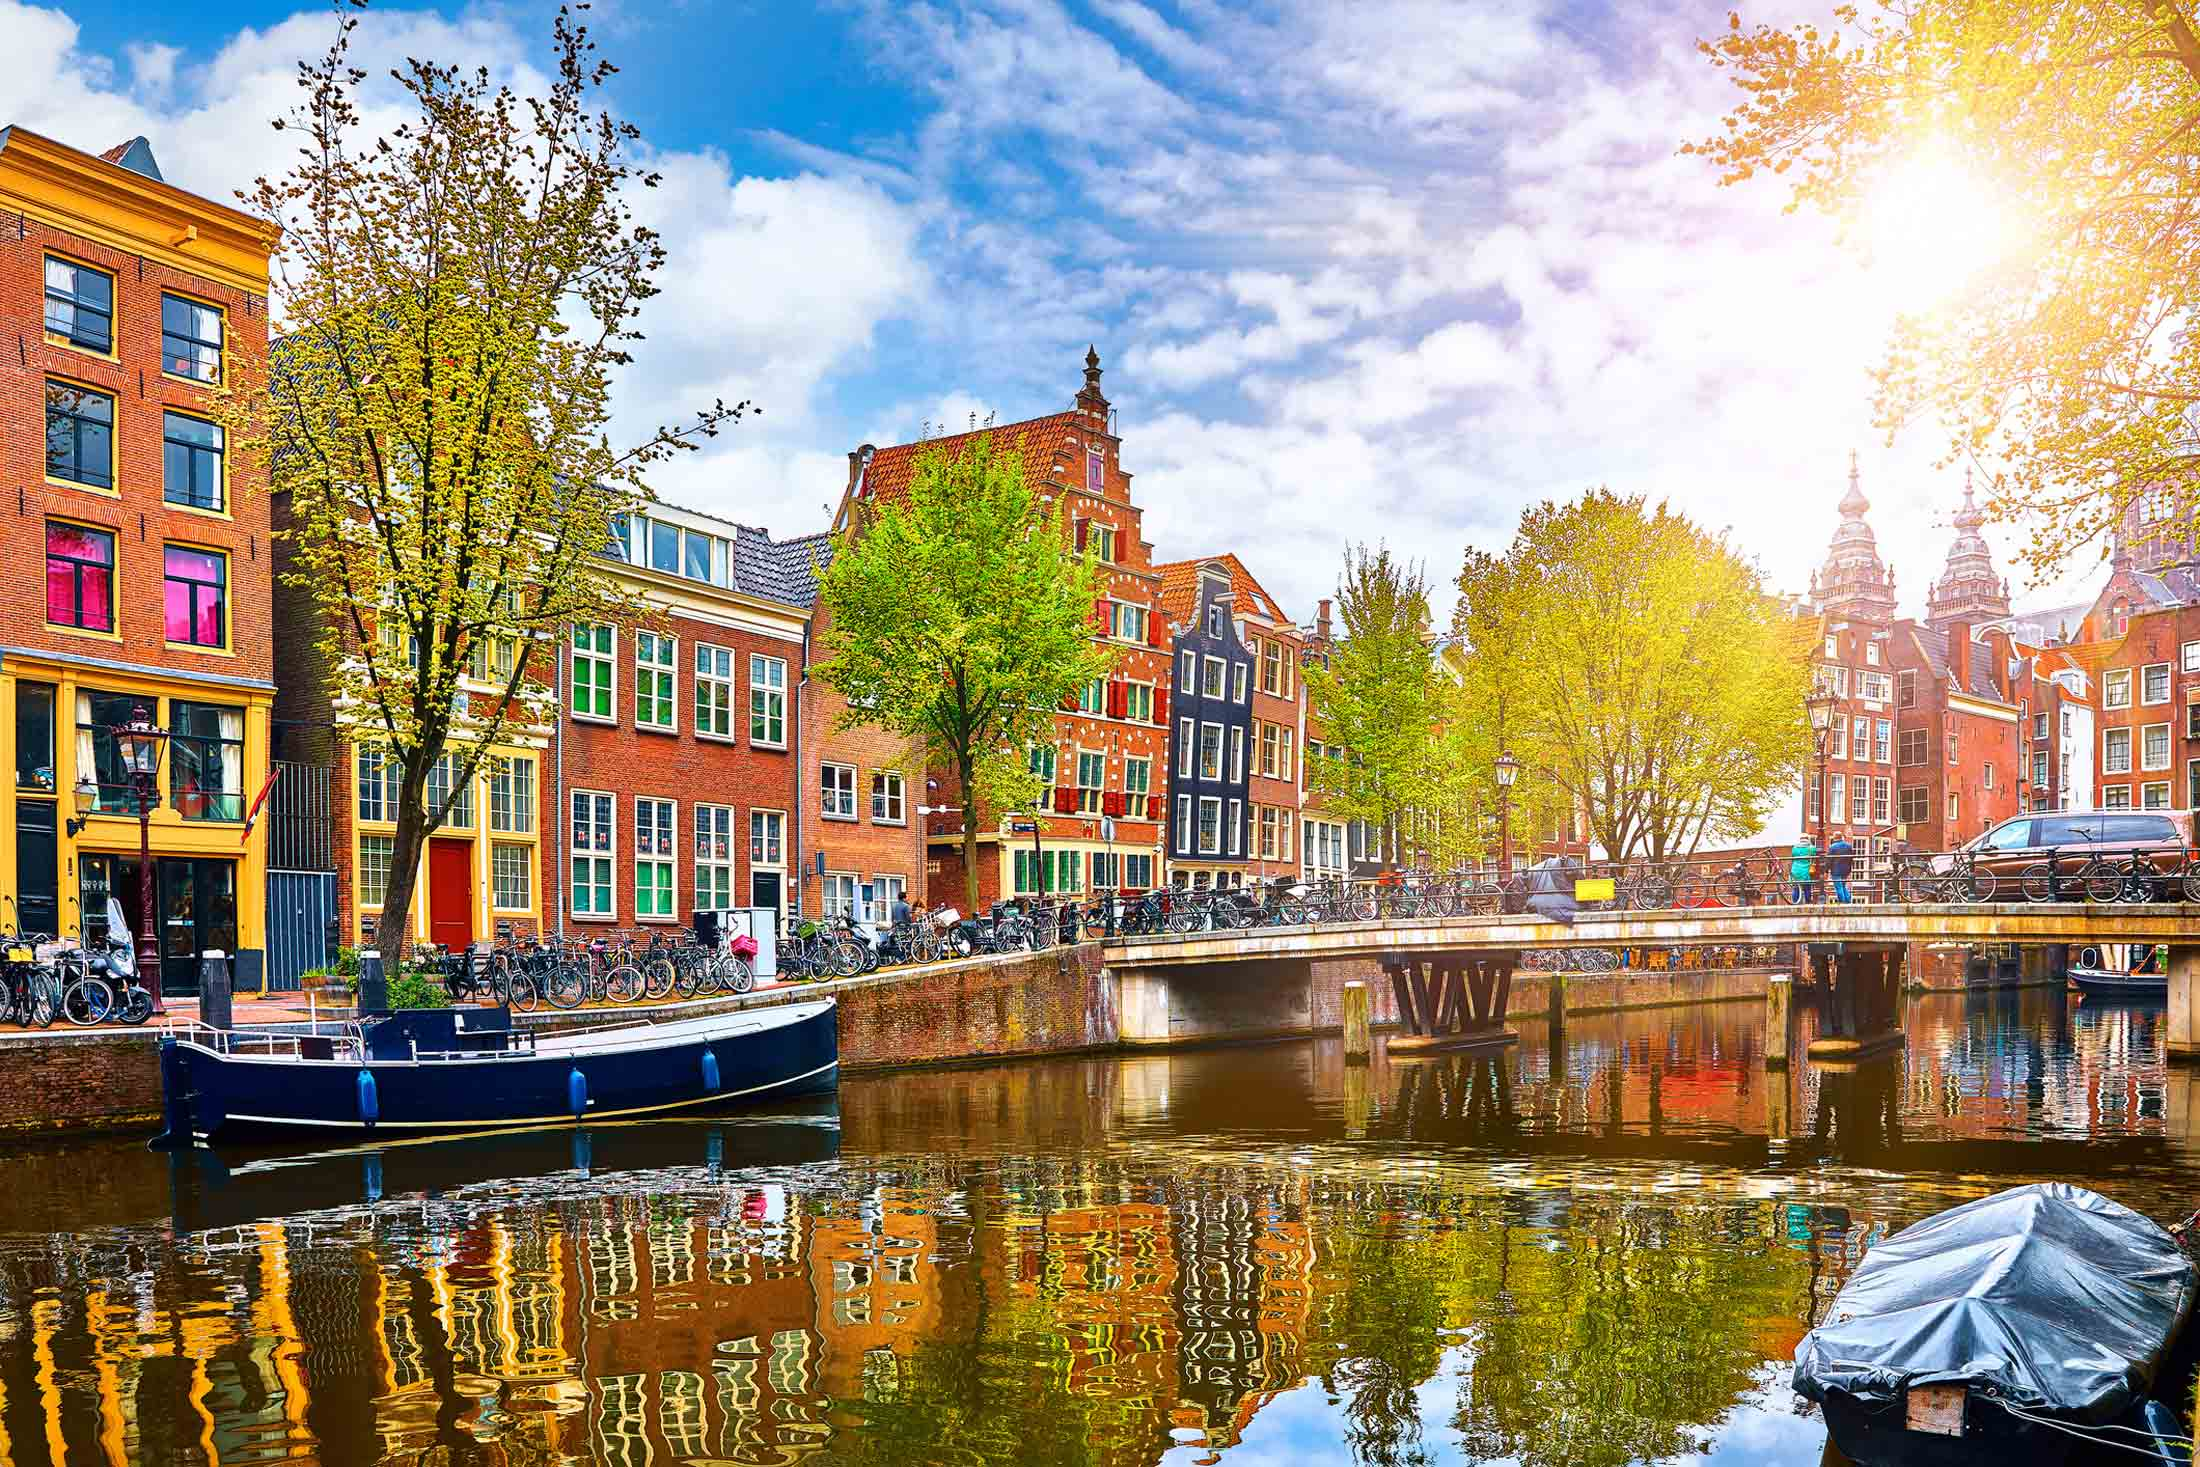 Amsterdam – Sightseeing, Travel During Holiday Season